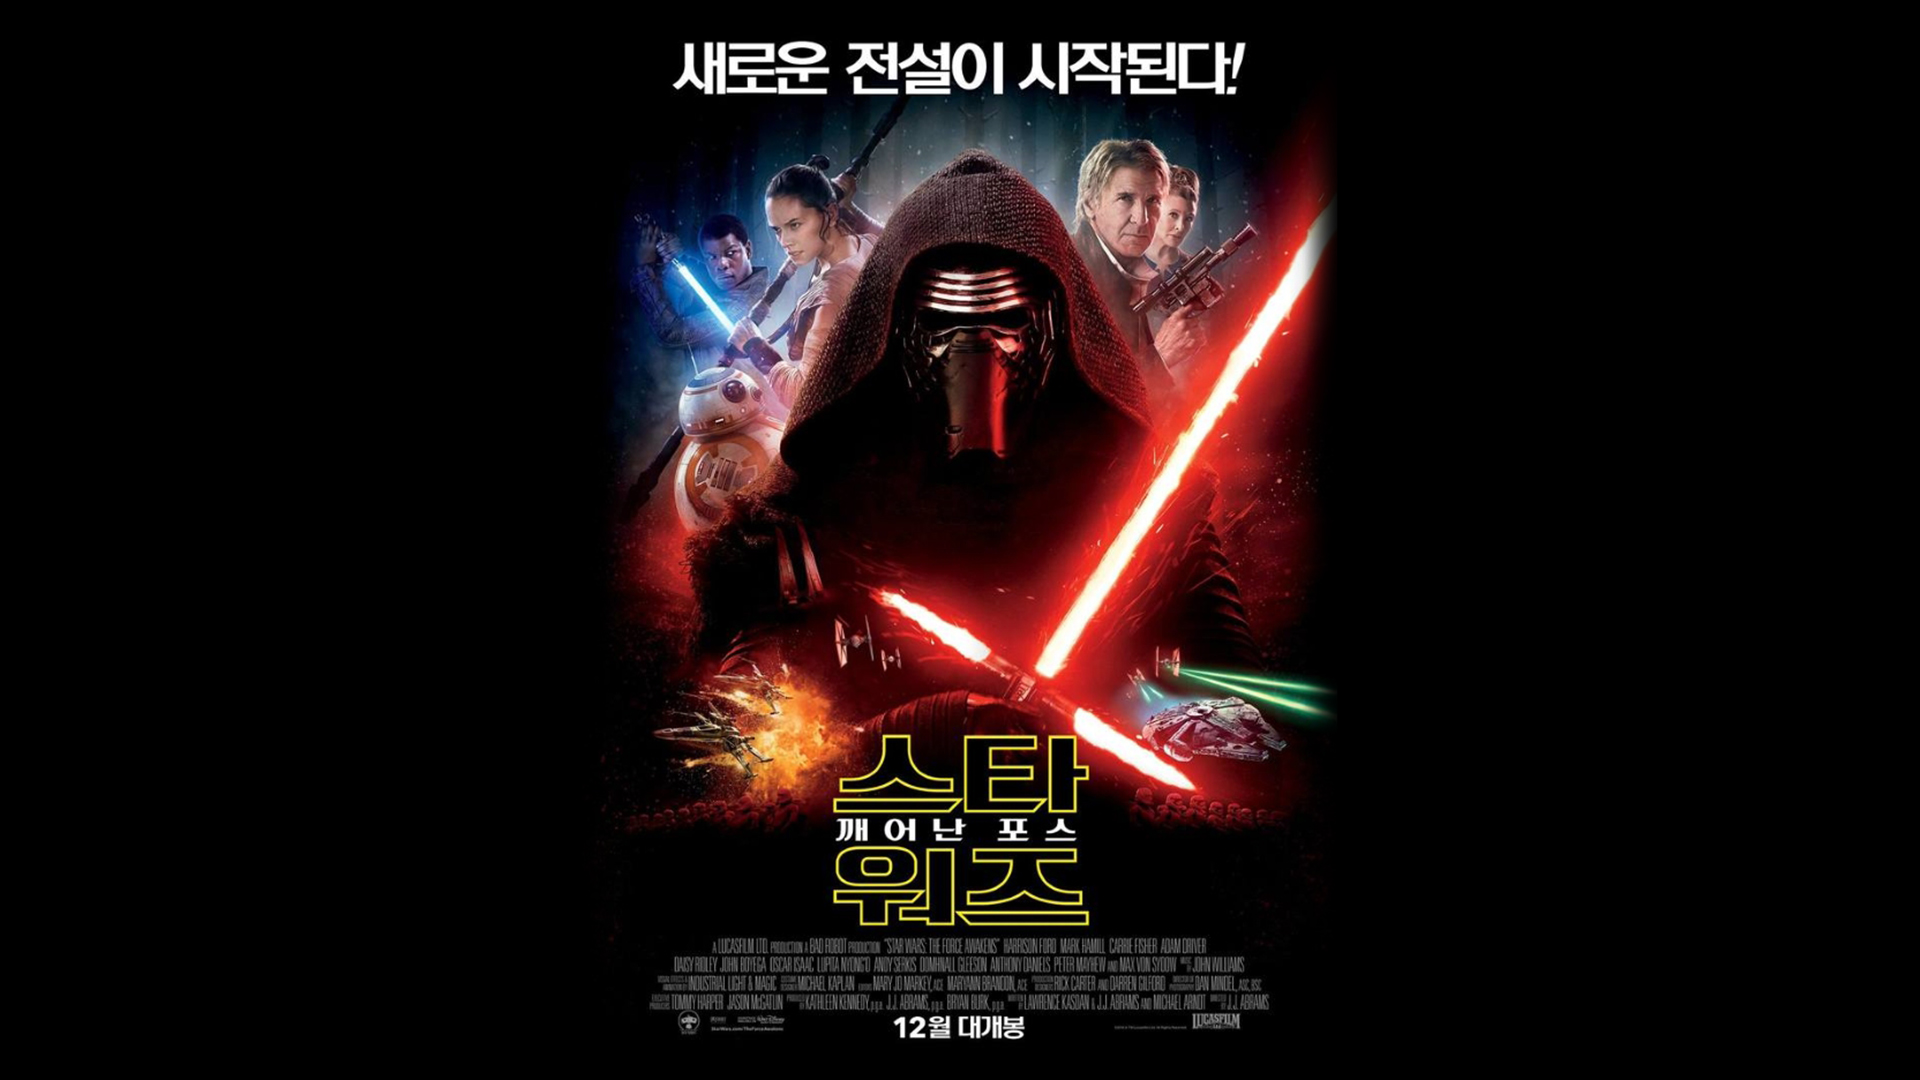 Star Wars : The Force Awaken, Affiche japonaise